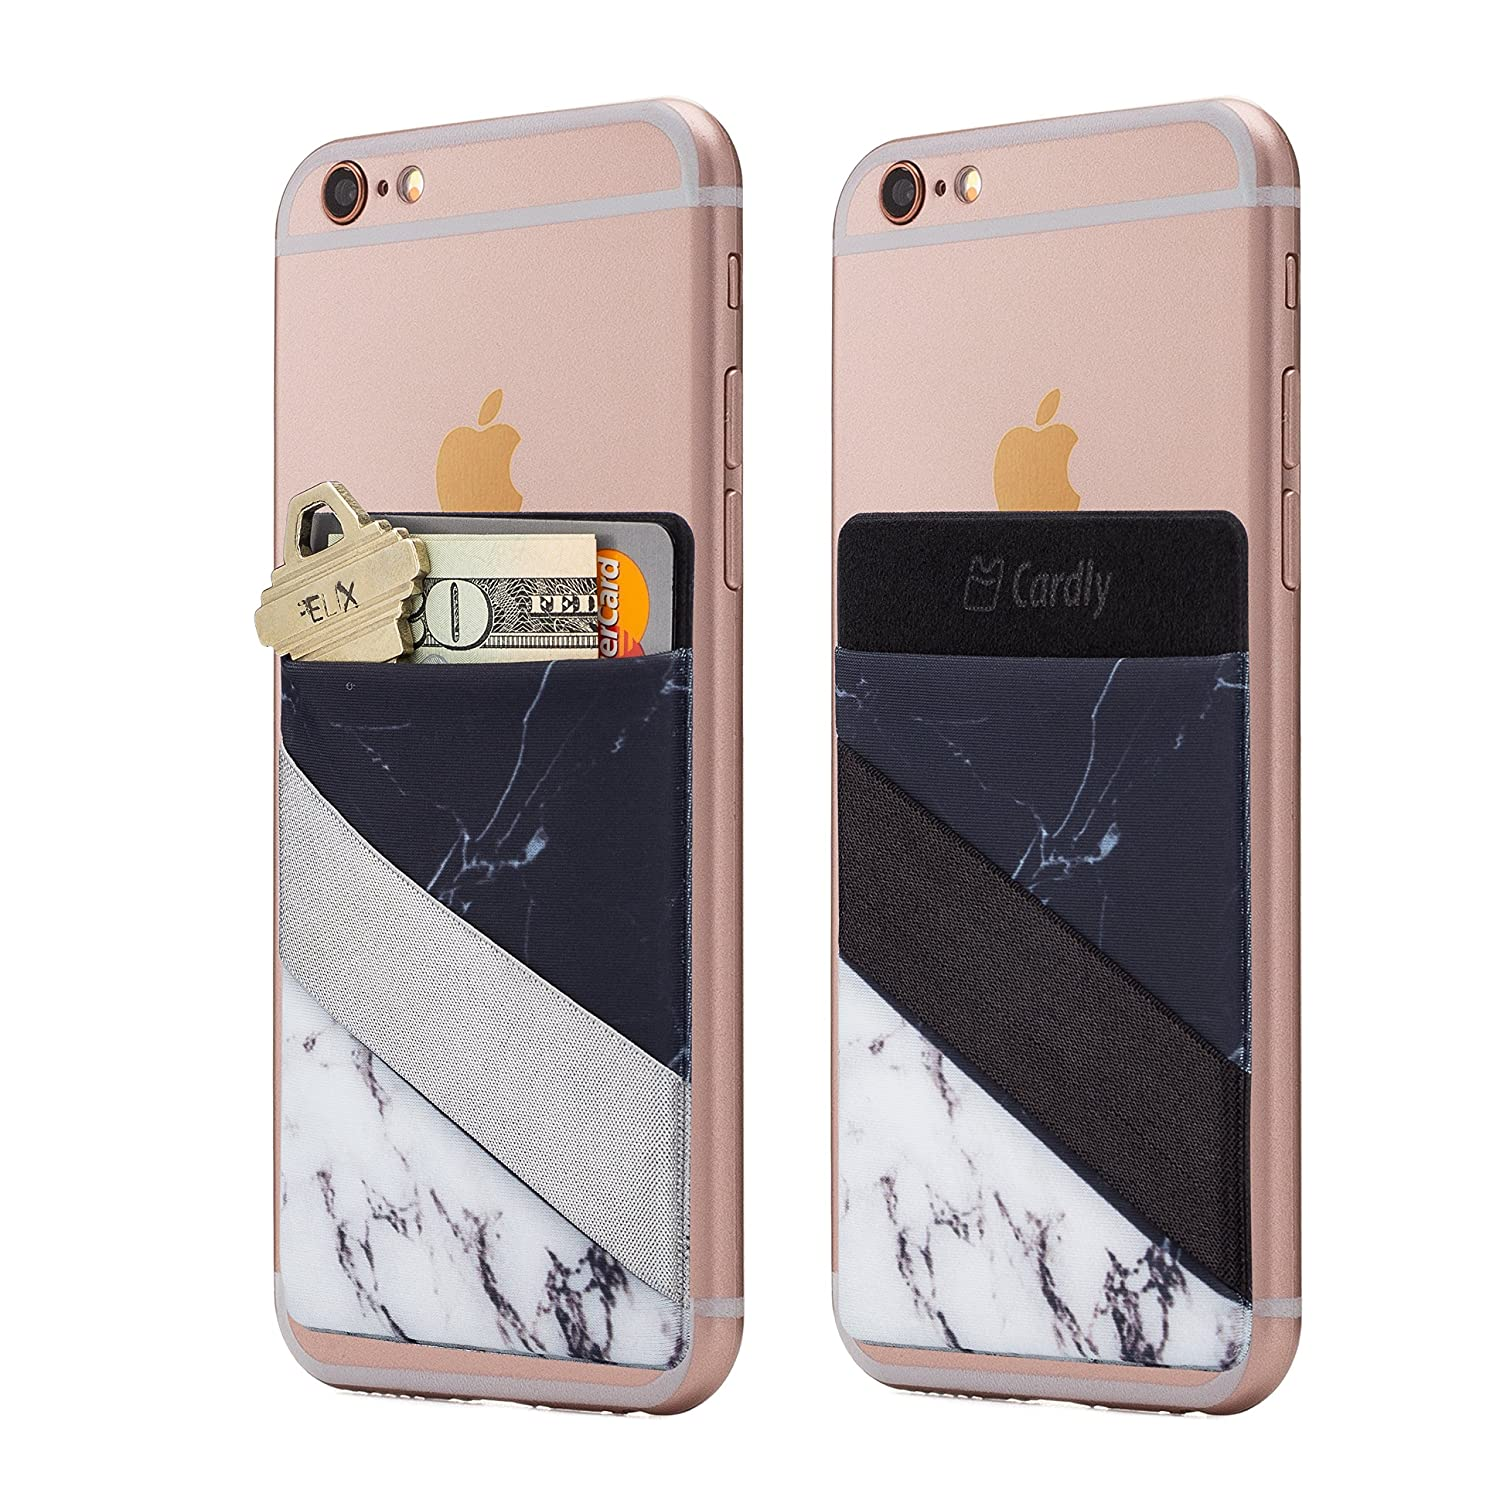 Android and All Smartphones. Two Finger Strap Cell Phone Stick on Wallet Card Holder Phone Pocket for iPhone Cardly Split Marble